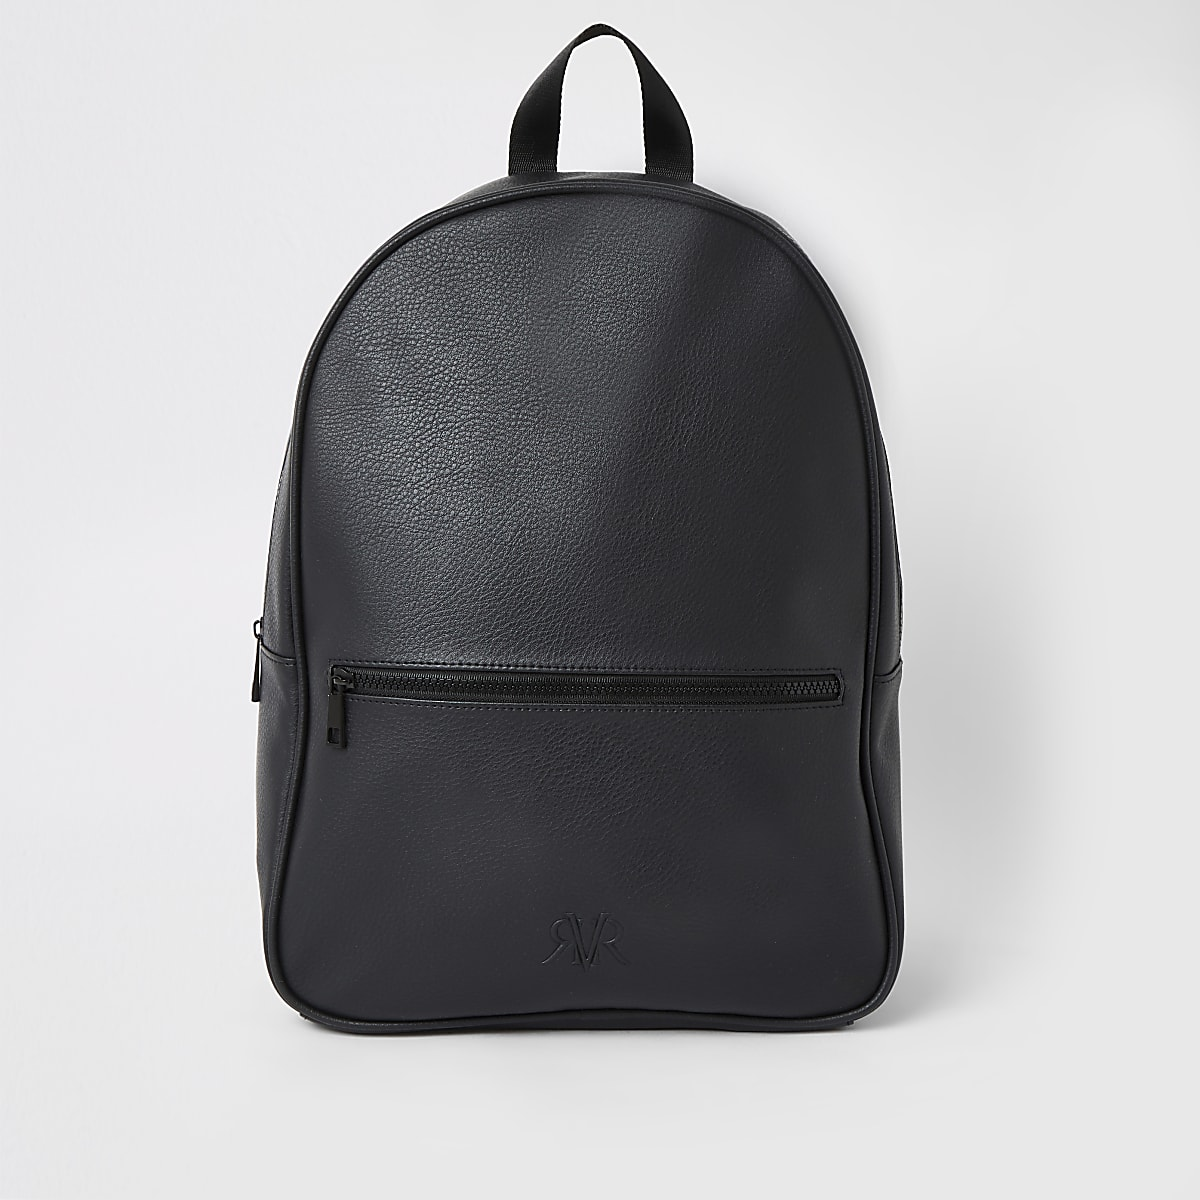 Black RI backpack